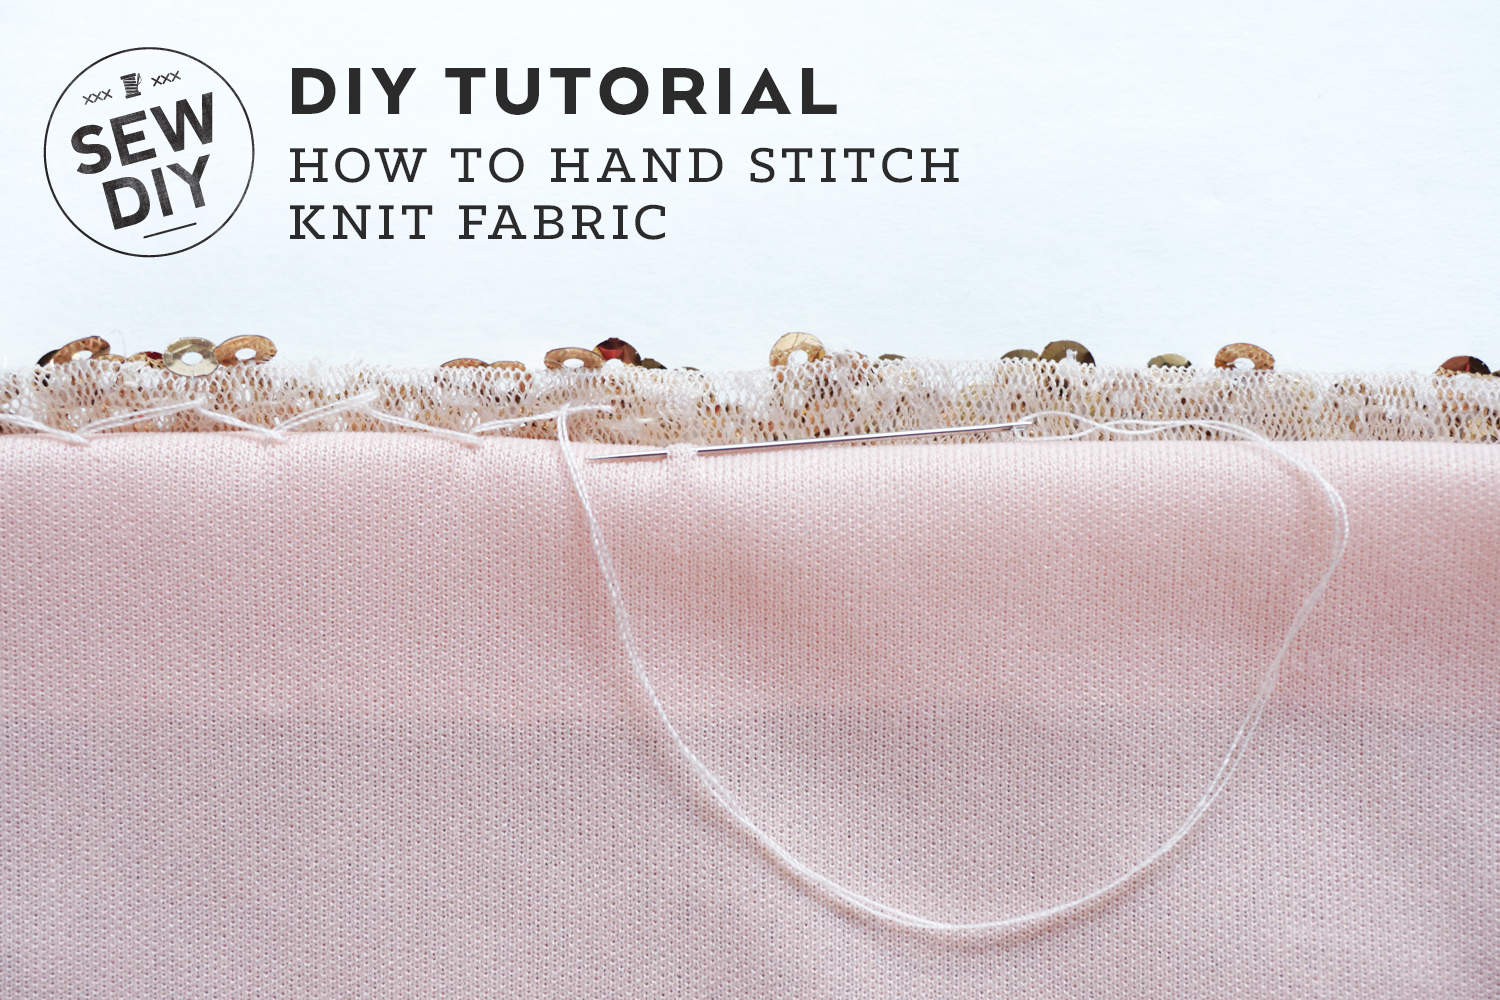 How to Hand Stitch Knit Fabric | Sew DIY